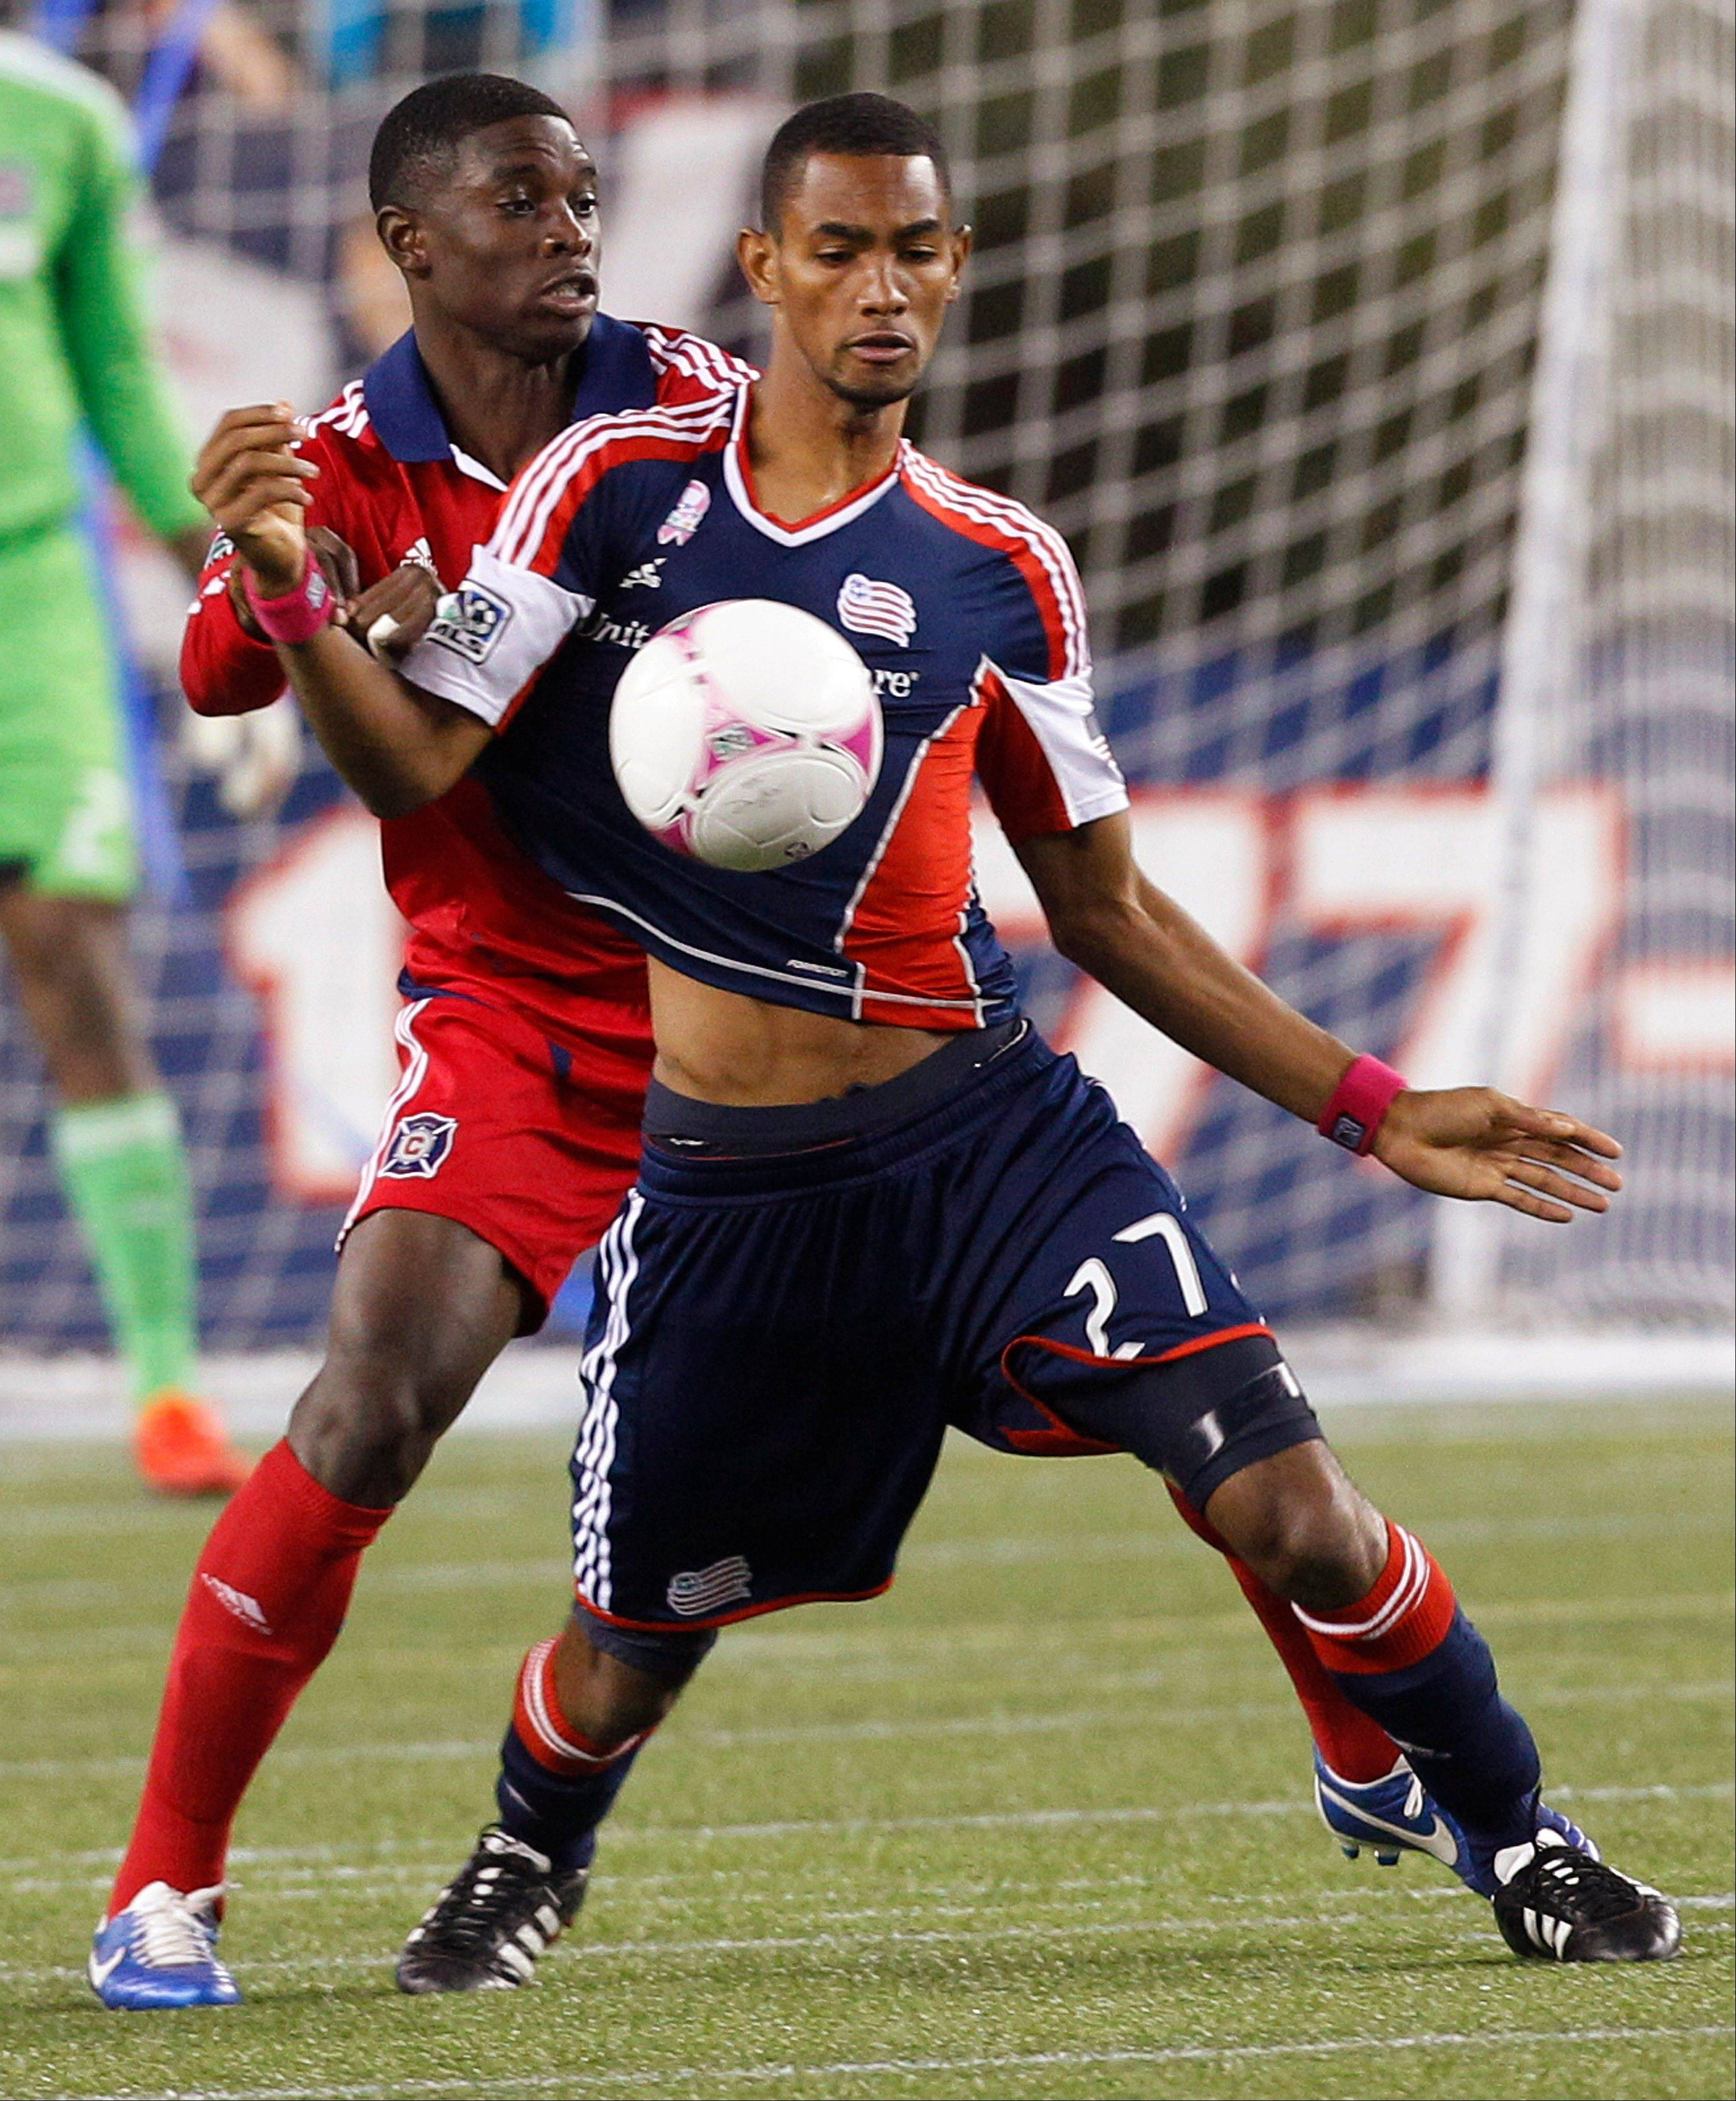 Chicago Fire defender Jalil Anibaba (6) probably will start Saturday at Sporting Kansas City as the team deals with injuries on its back line.